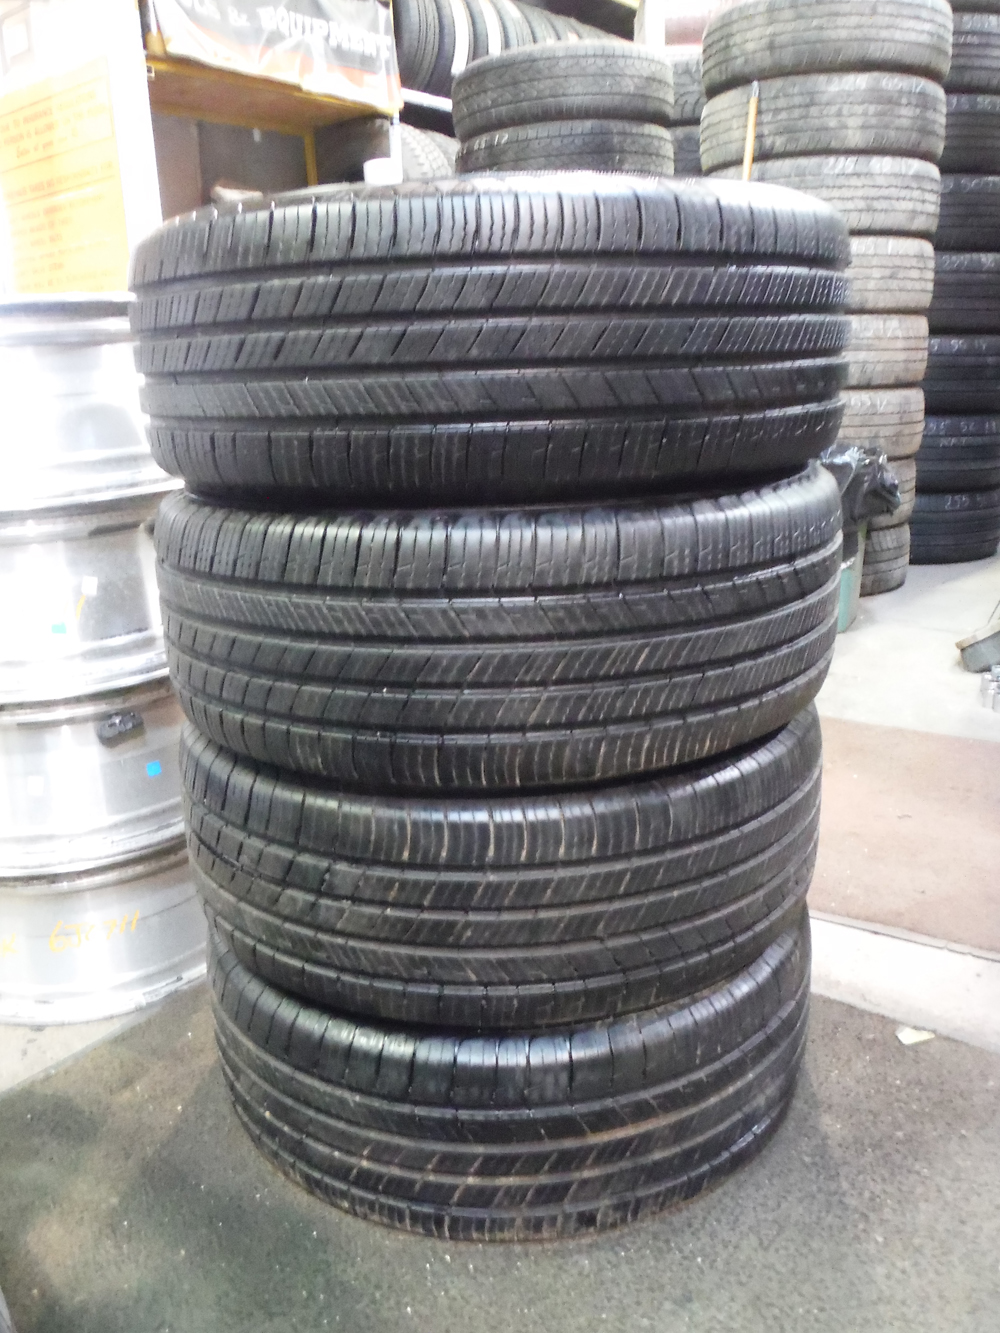 Michelin Defender tires for sale